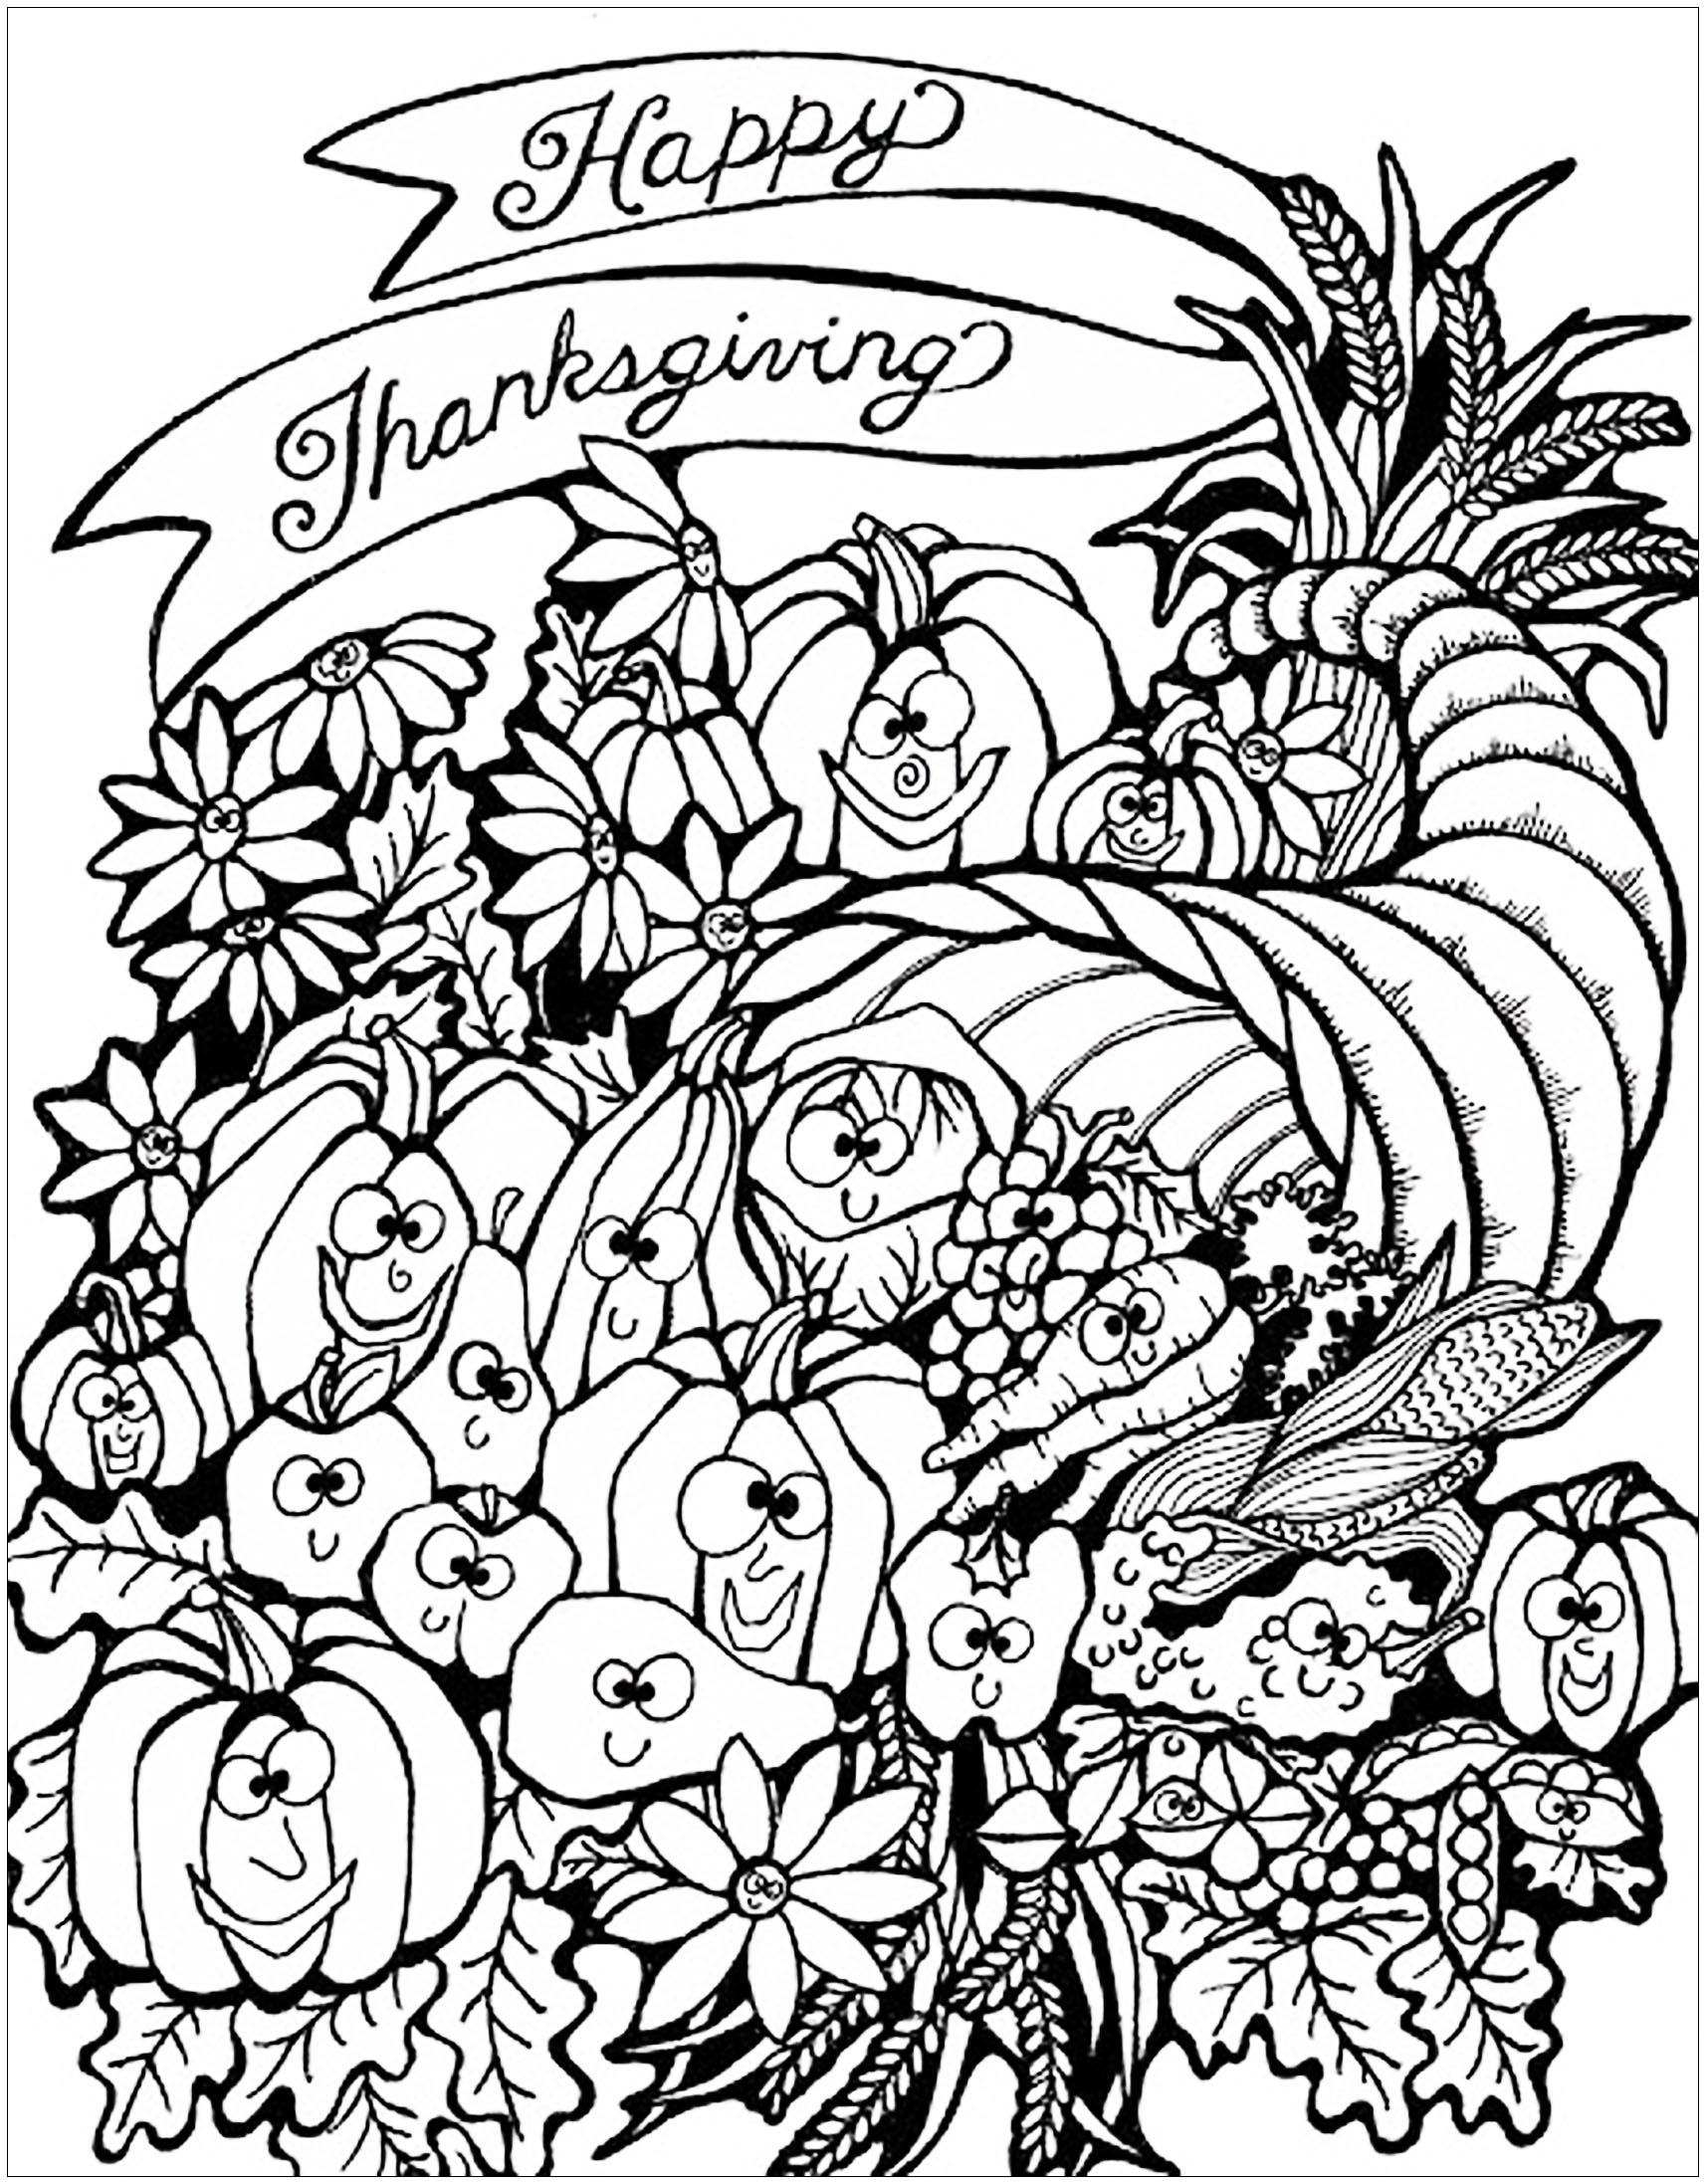 free coloring pages thanksgiving thanksgiving coloring pages coloring thanksgiving free pages